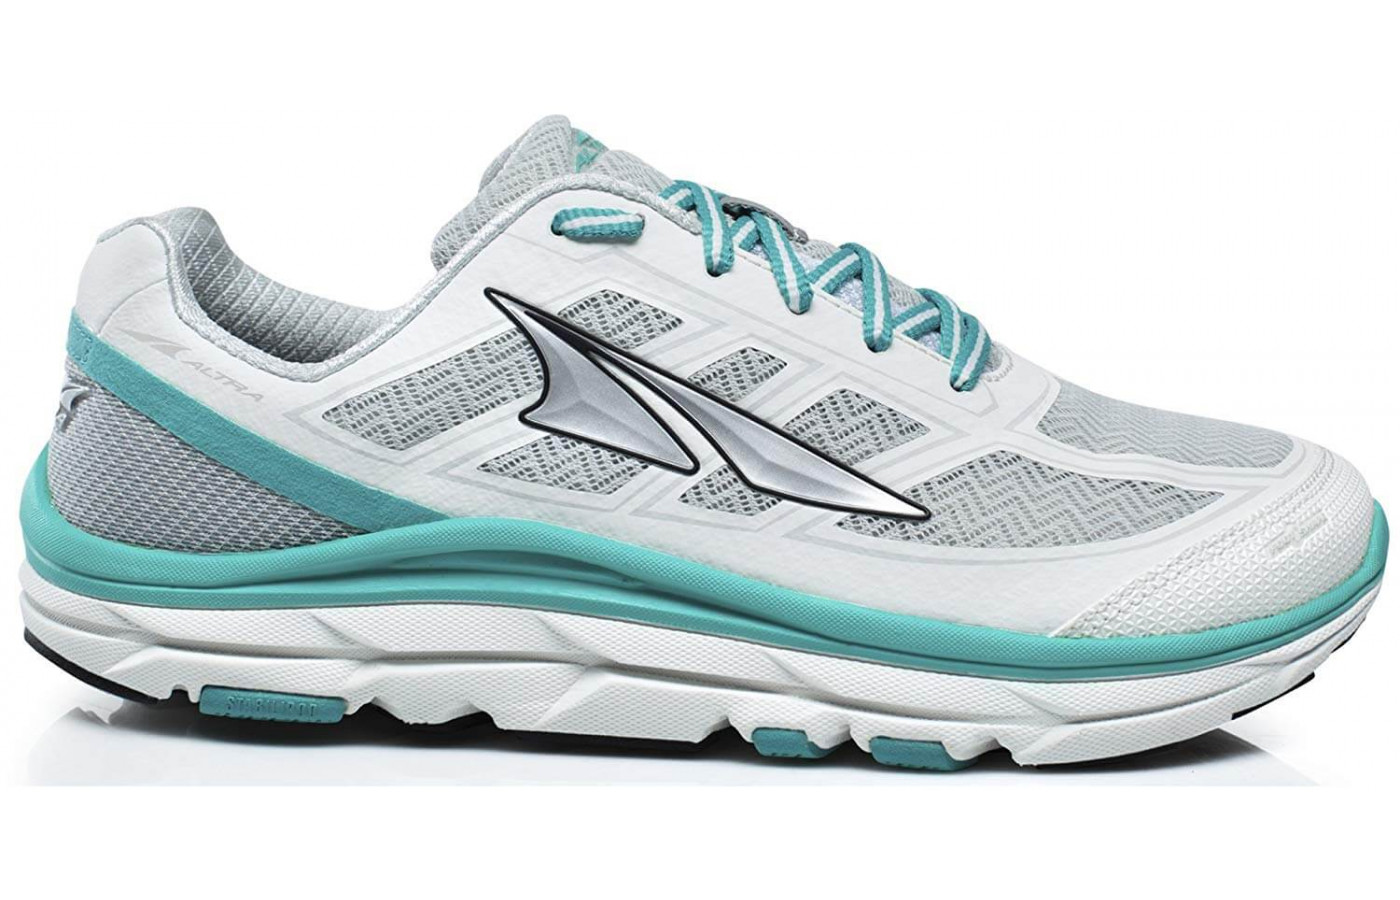 a44b1fc4bb Altra's trademarked Guide Rail and StabiliPod technology work together to  provide a stable wear.